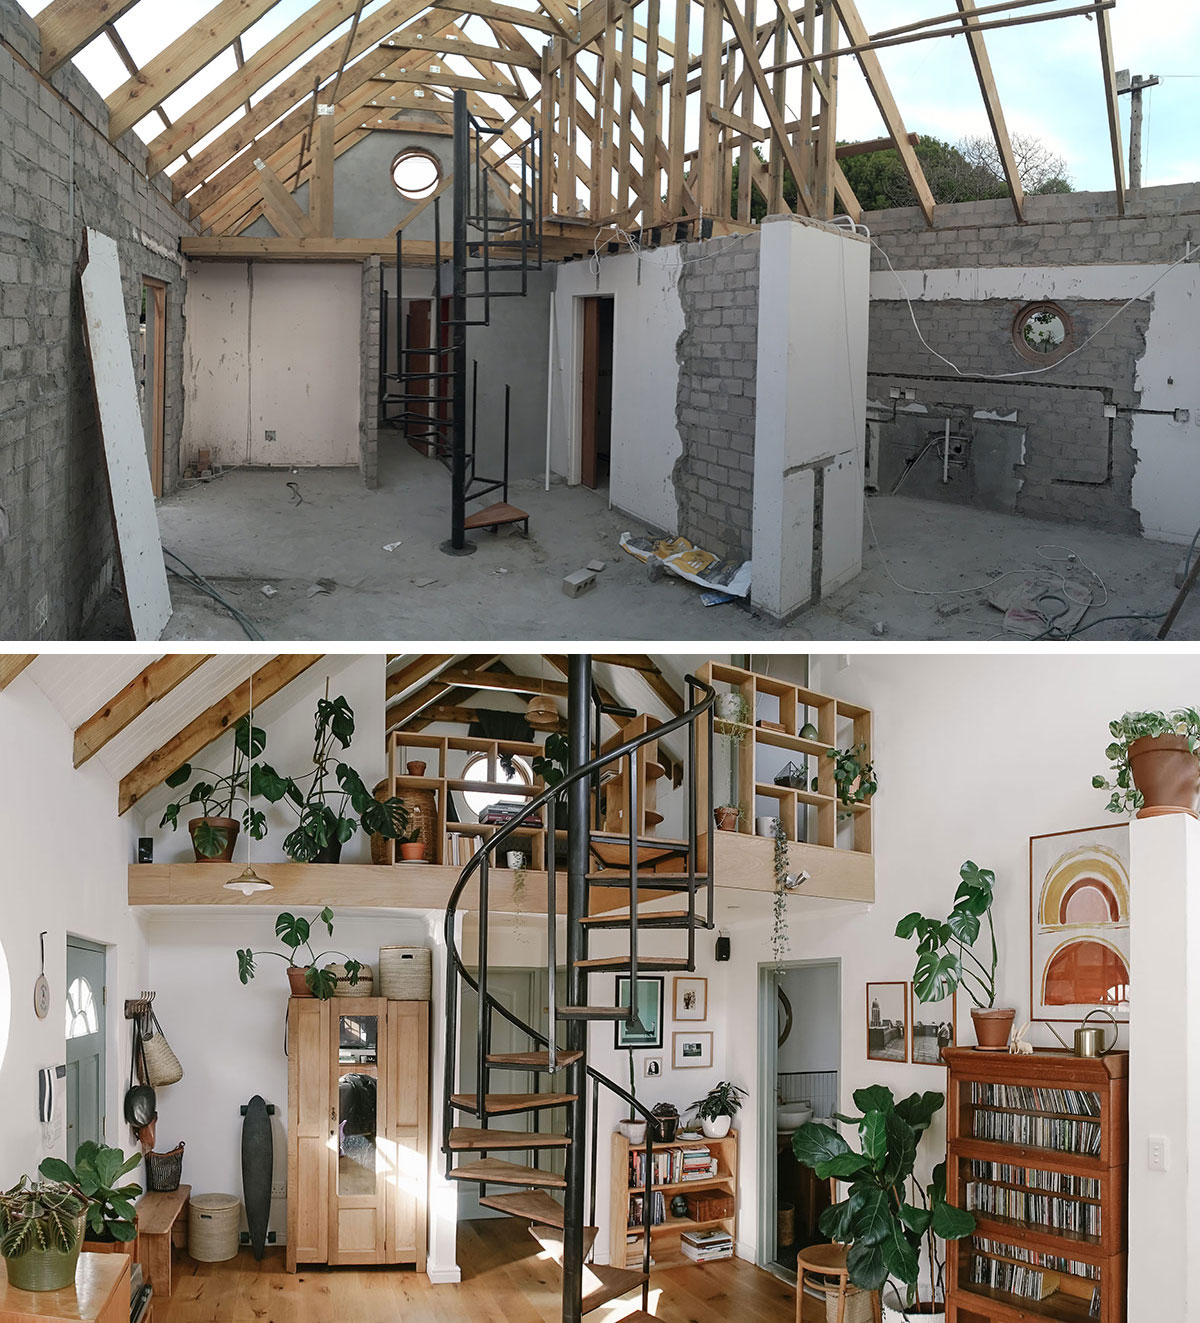 Sunbird Cottage: an inspiring before and after home renovation in Cape Town